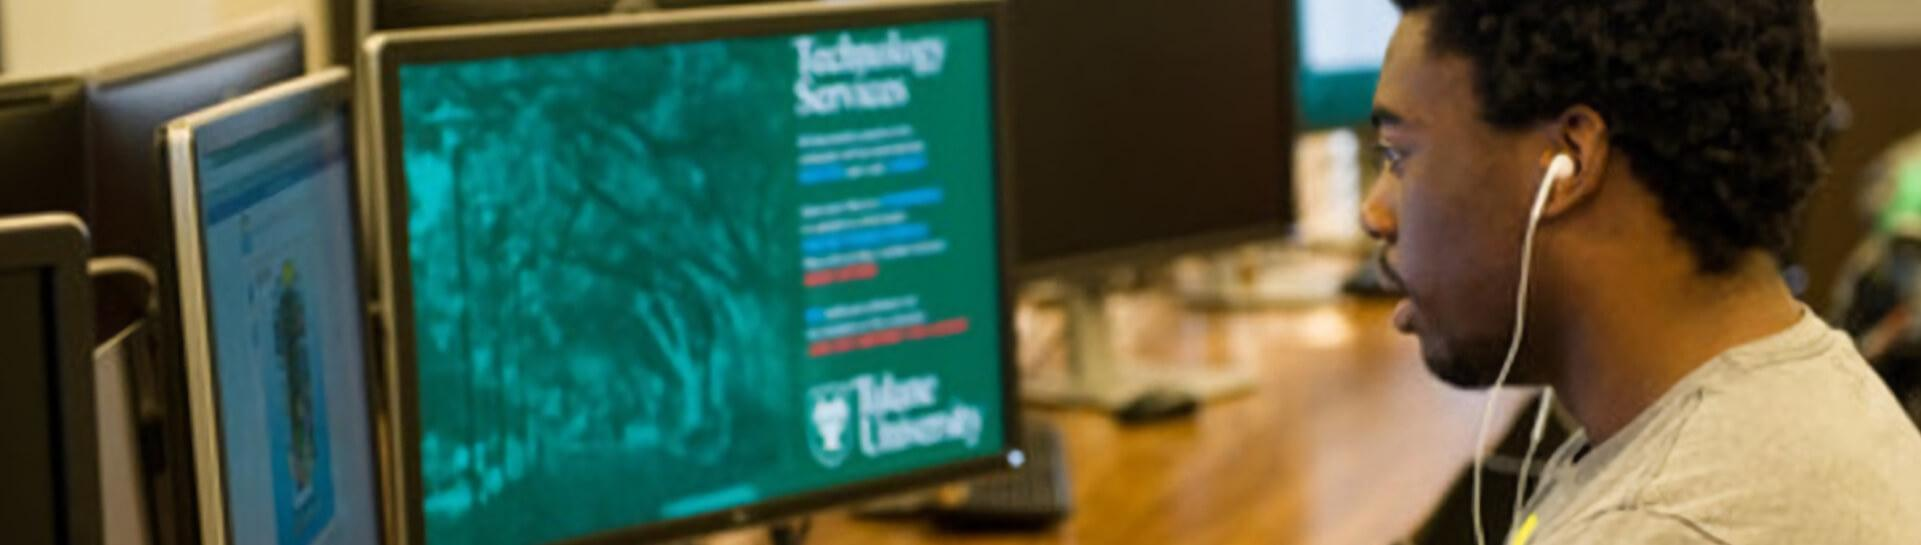 A student working on a computer representing Tulane School of Professional Advancement's information technology degree program in New Orleans, LA